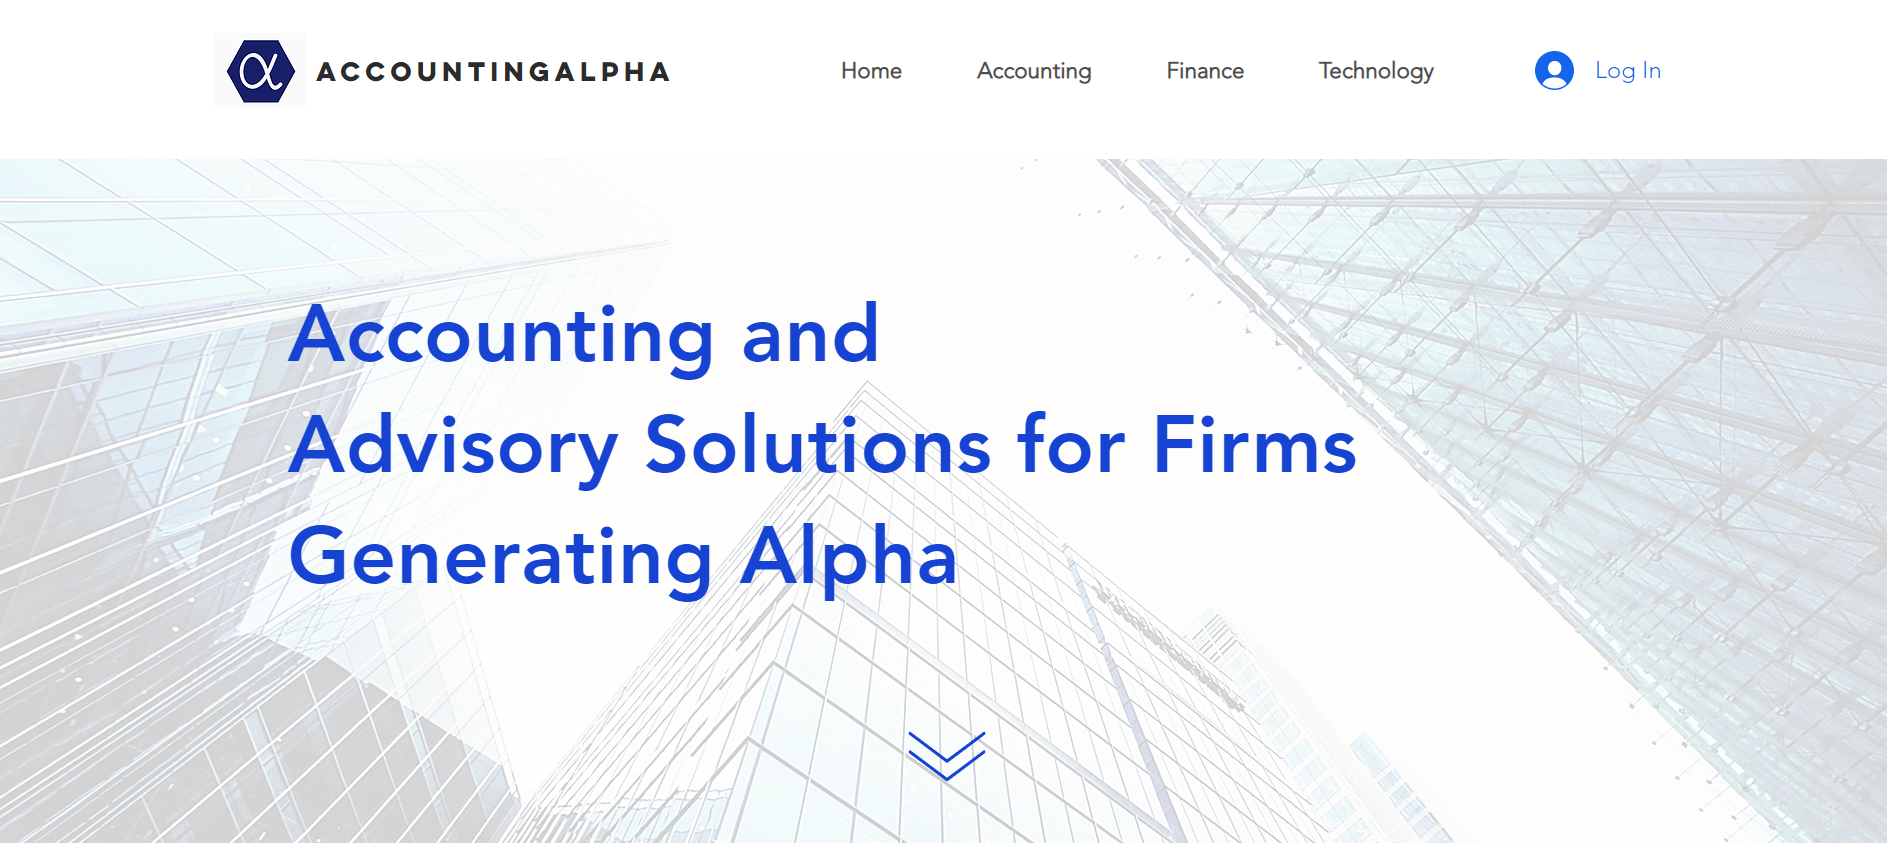 ACCOUNTING ALPHA